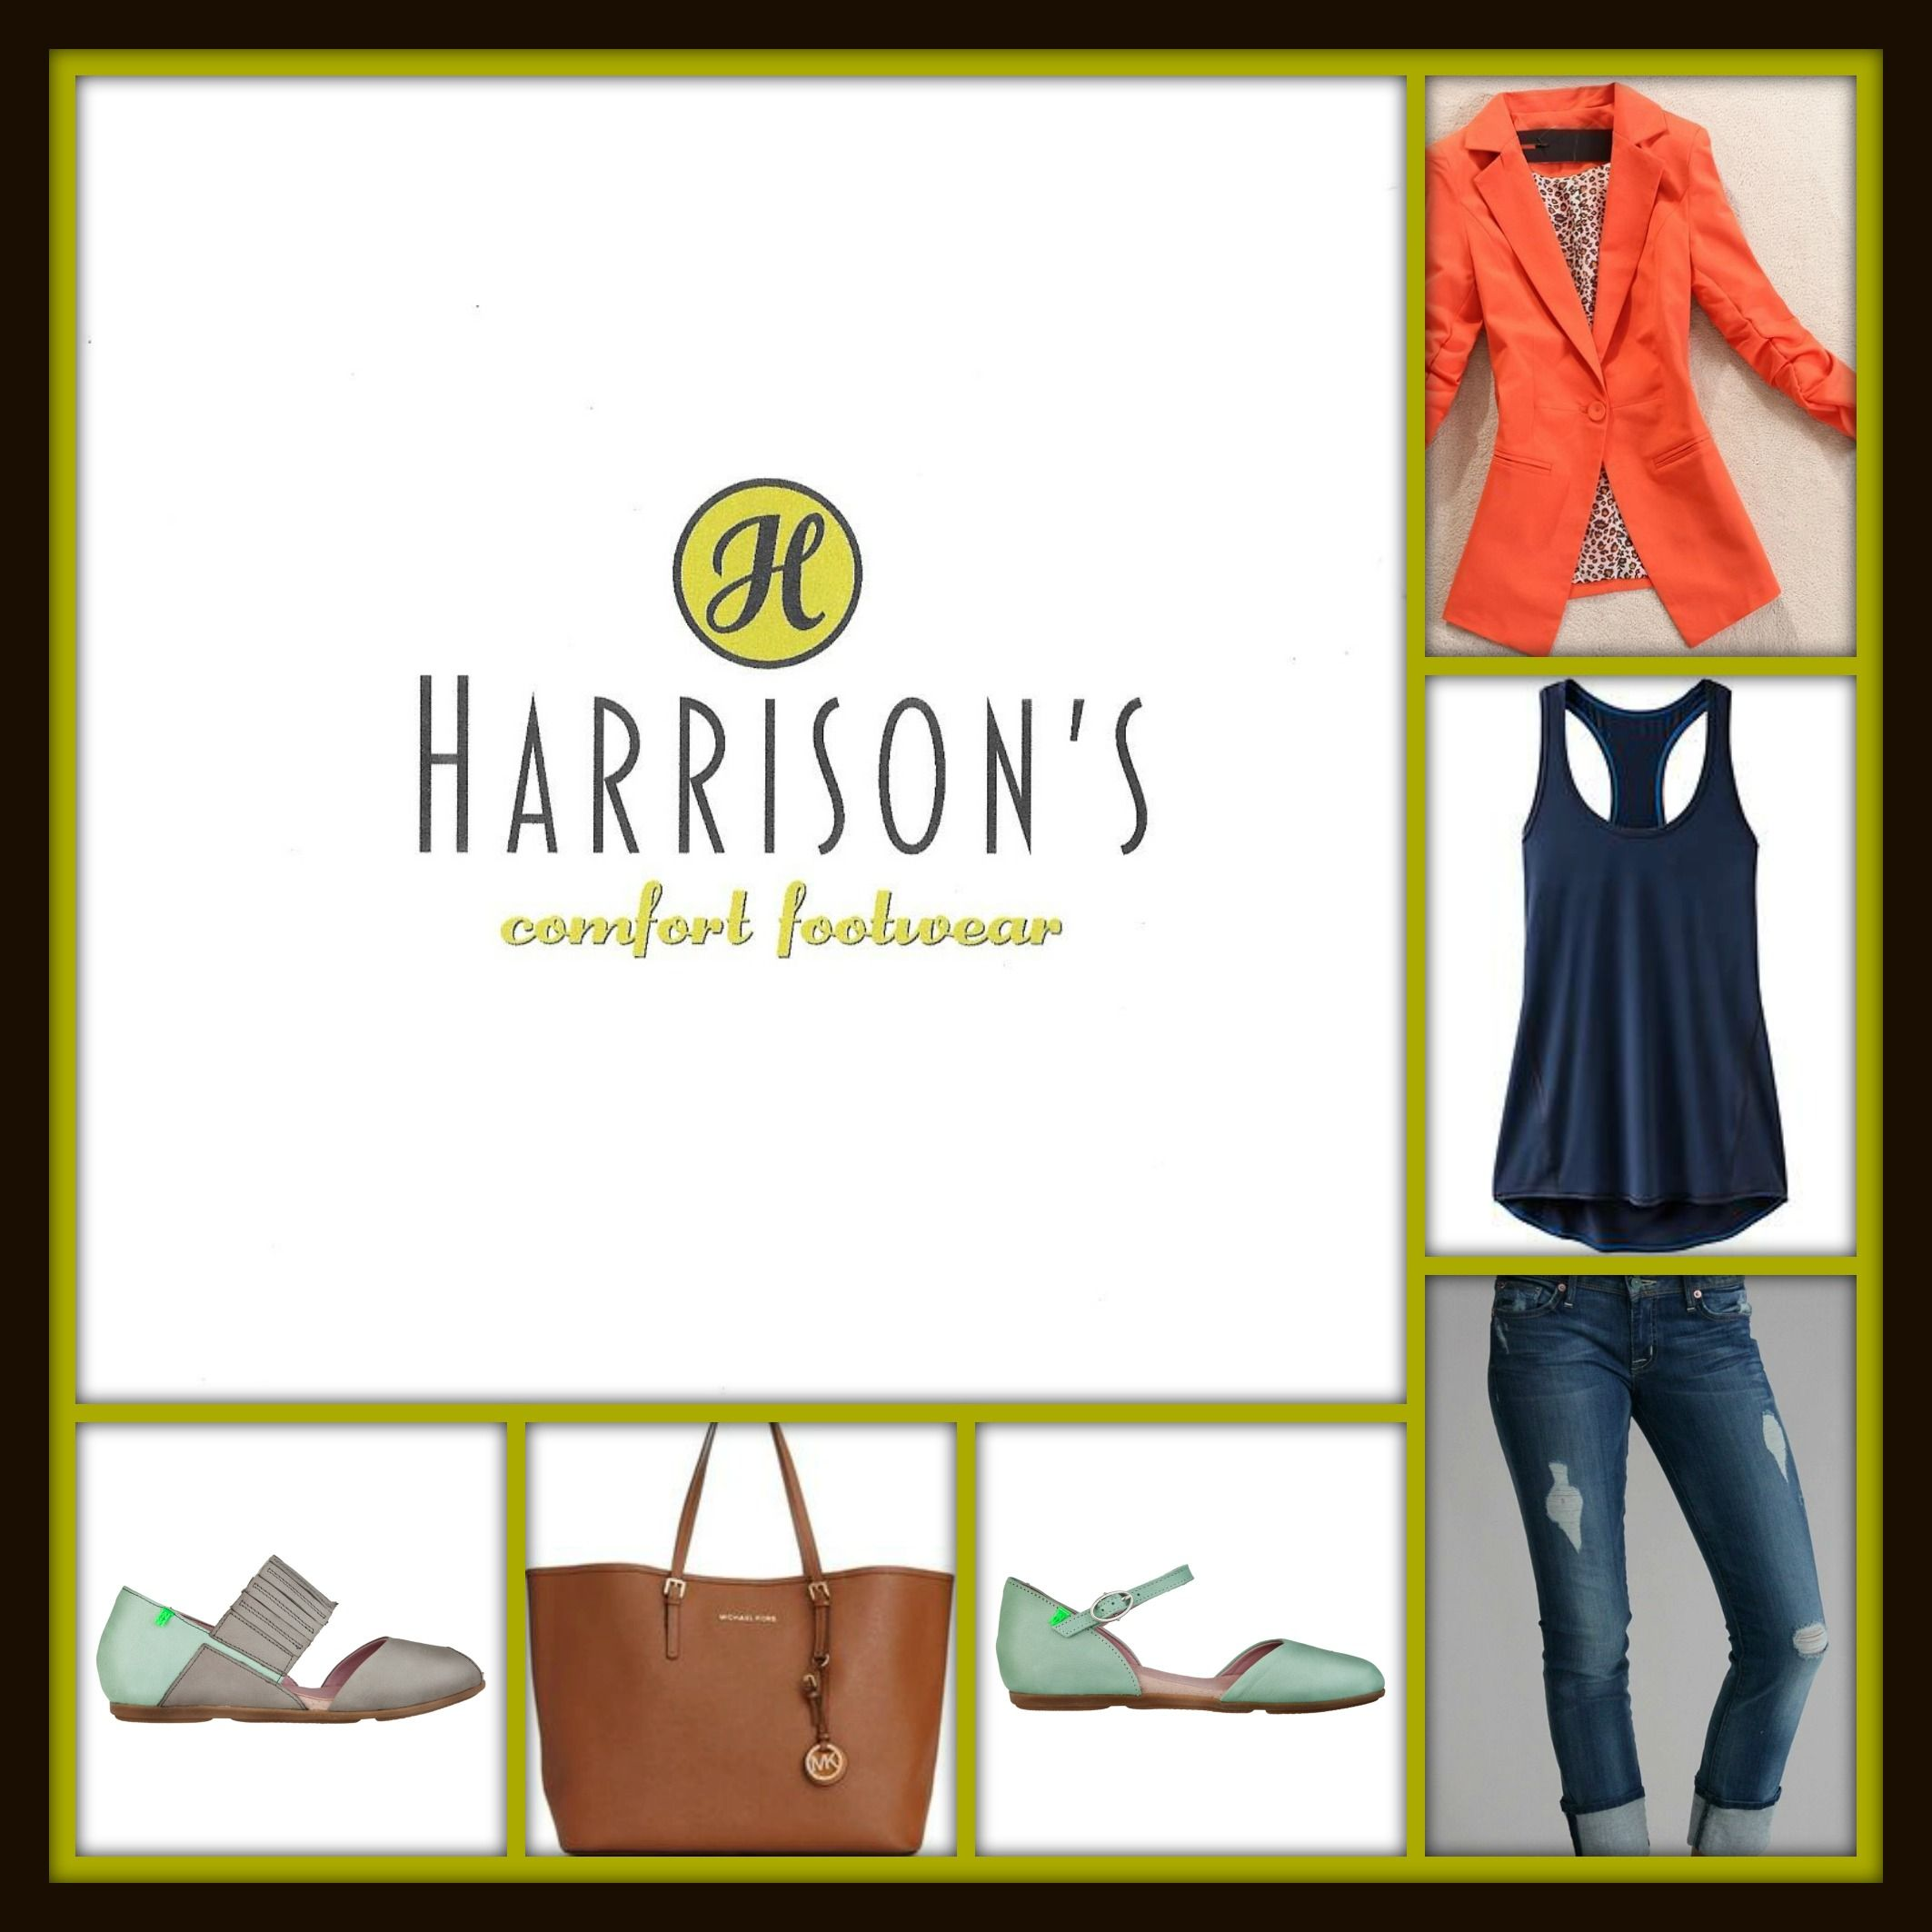 Oranges, mints...yes for summer!  Blazer over anything...and a pop of color in the shoe!  Love el naturalista!